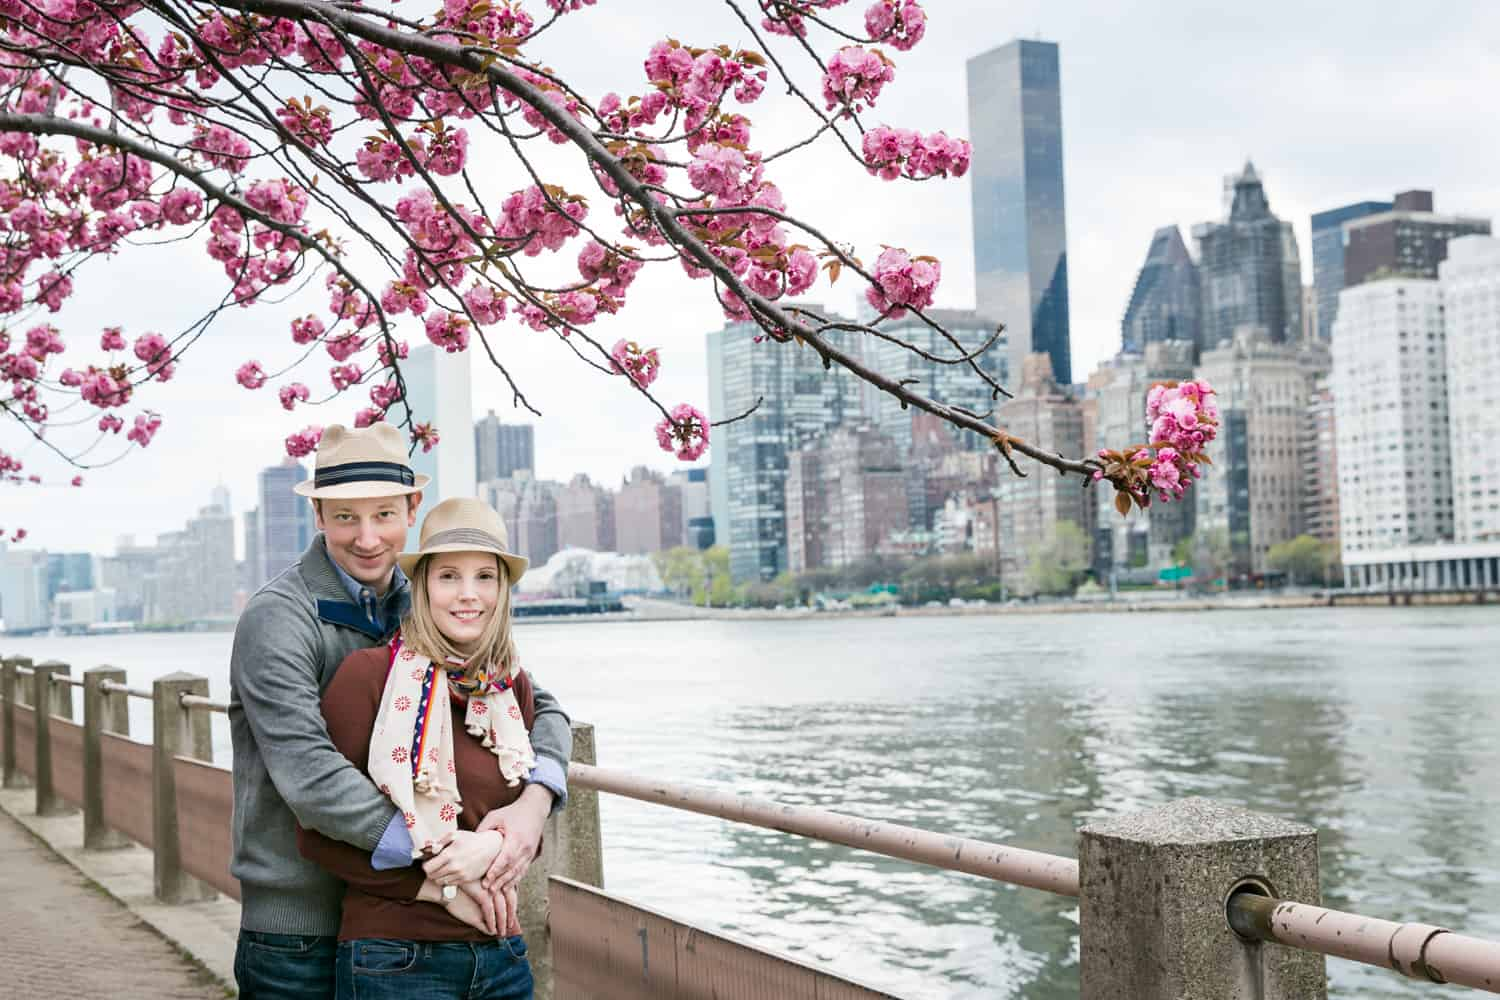 Couple under cherry blossom trees on Roosevelt Island for an article ranking the best places to see cherry blossoms in NYC